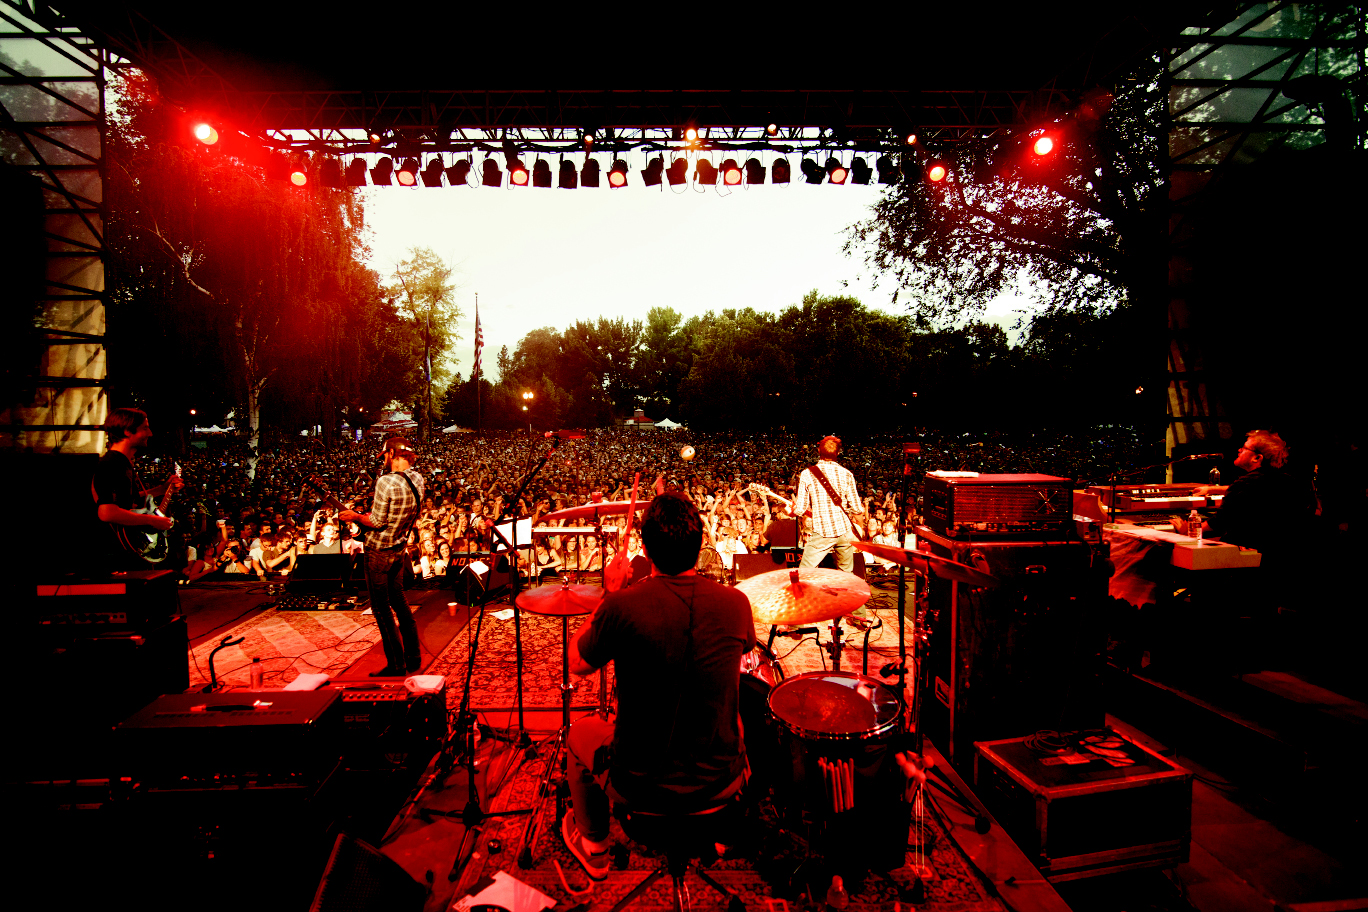 Band of Horses headlining Pioneer Park in Salt Lake City, Utah, last July